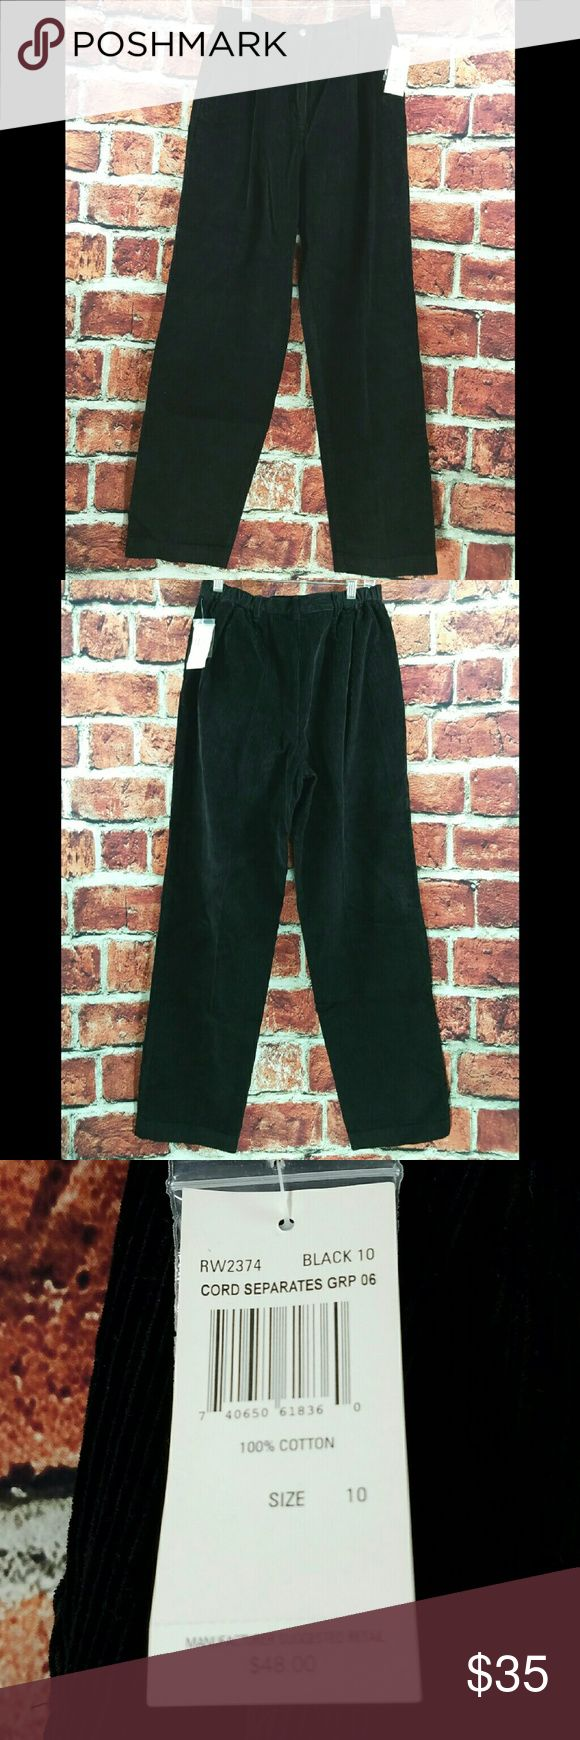 Rafaella Black Pleated Cotton Cords 28x30 Womens Rafaella Black Pleated 100% Cotton Corduroy Pants Size: 10 (28x30) NEW  About this item:  Brand New 100% Cotton Pleated Black  Size: 10 Waist: 28 Inseam: 30 Rise: 13 Rafaella Pants Straight Leg